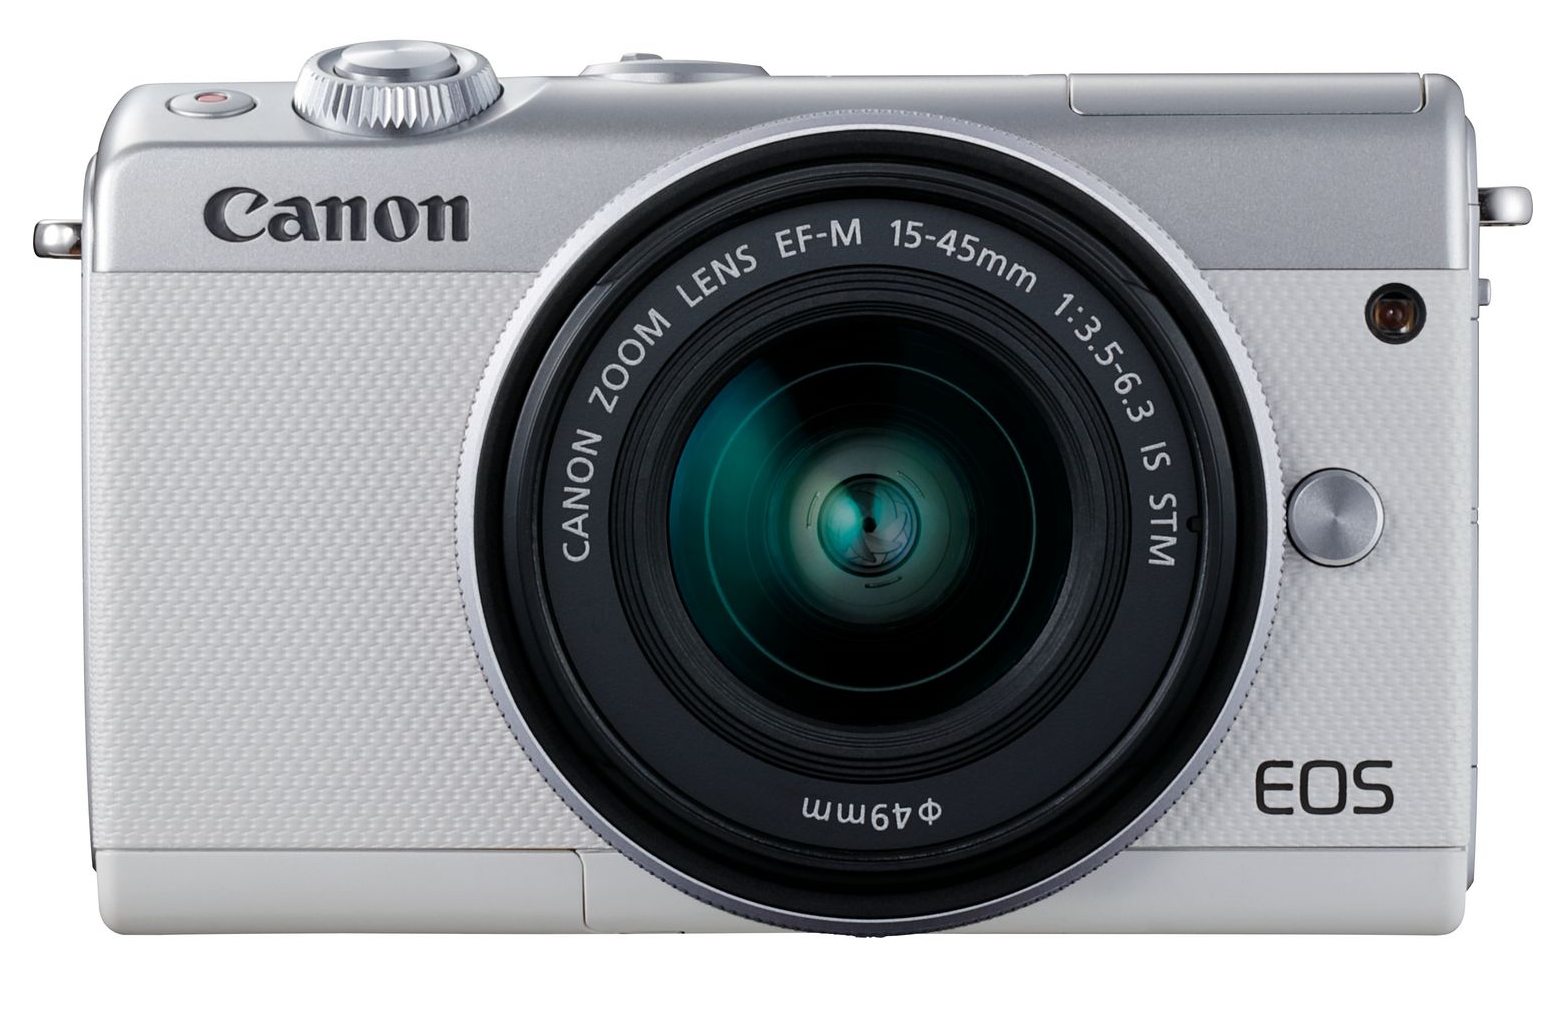 Canon EOS 2210C050 digital camera